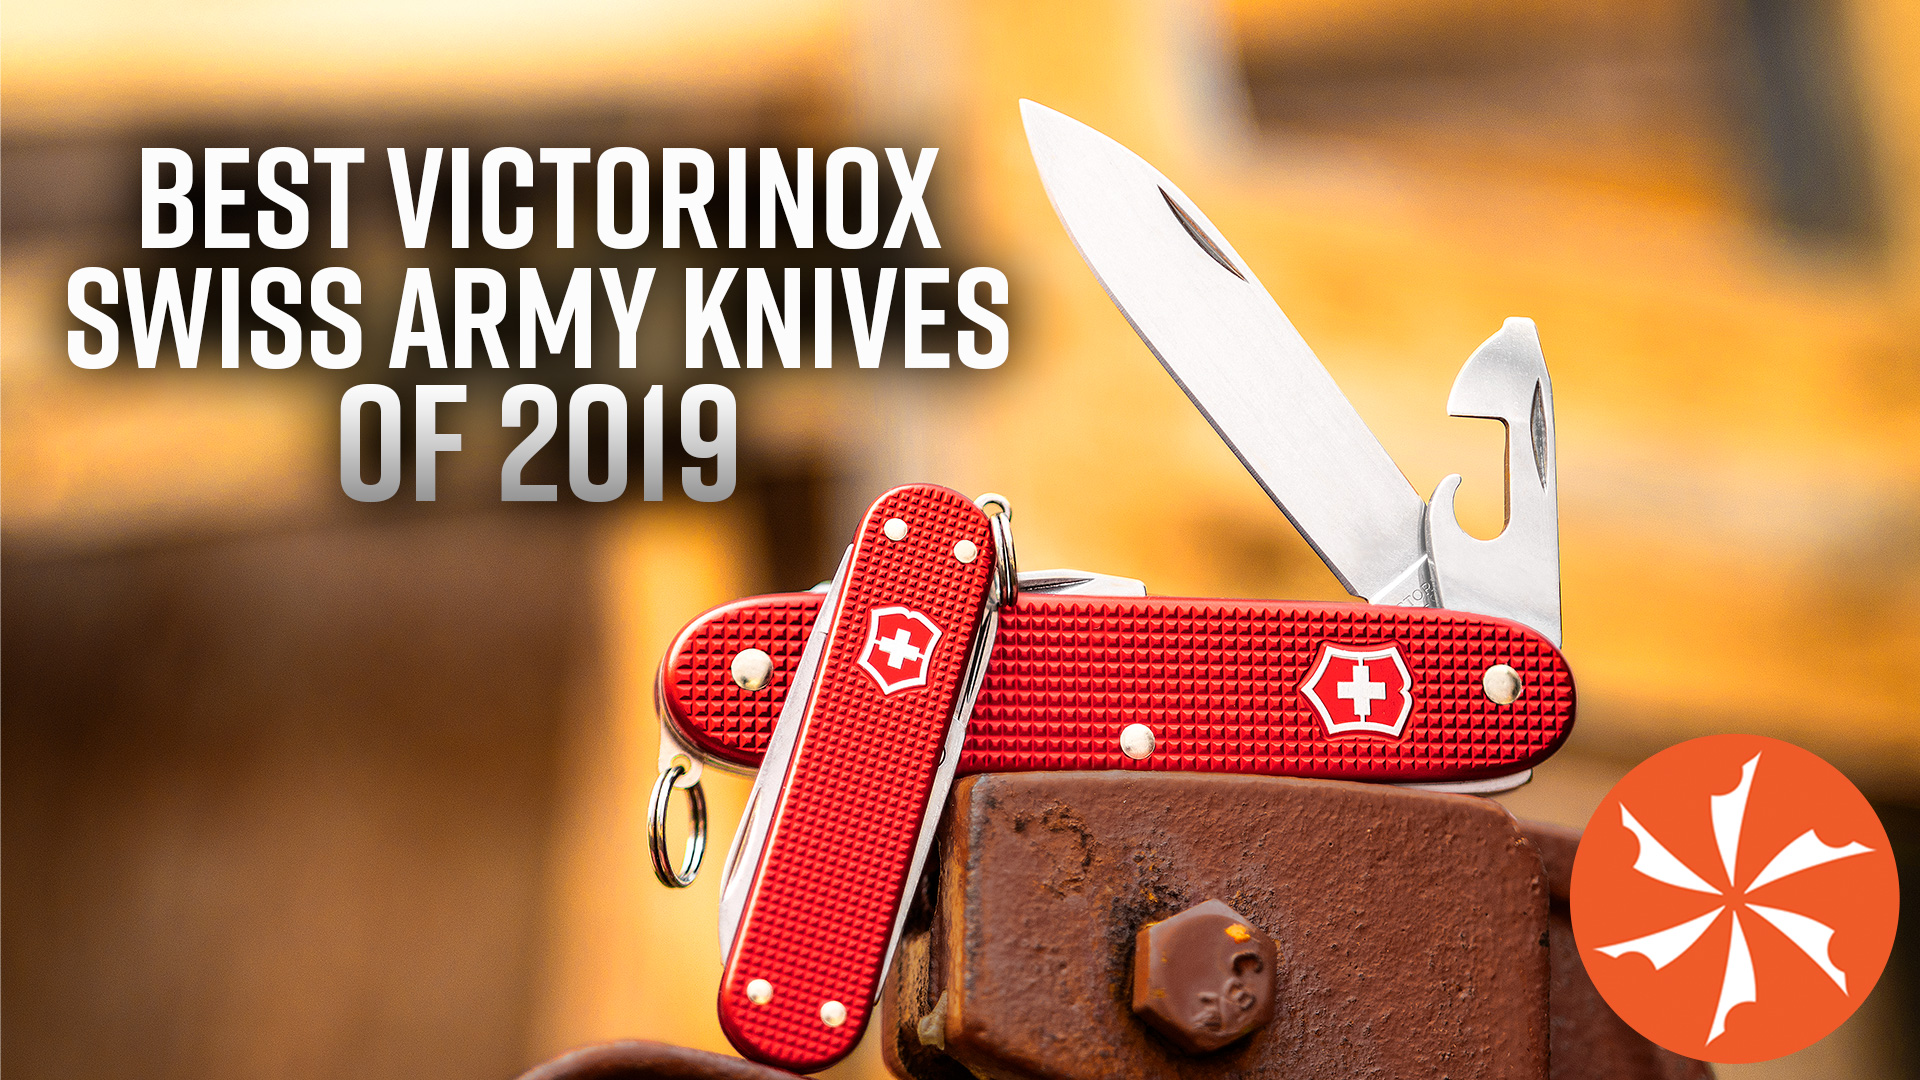 Best Swiss Army Knives of 2019